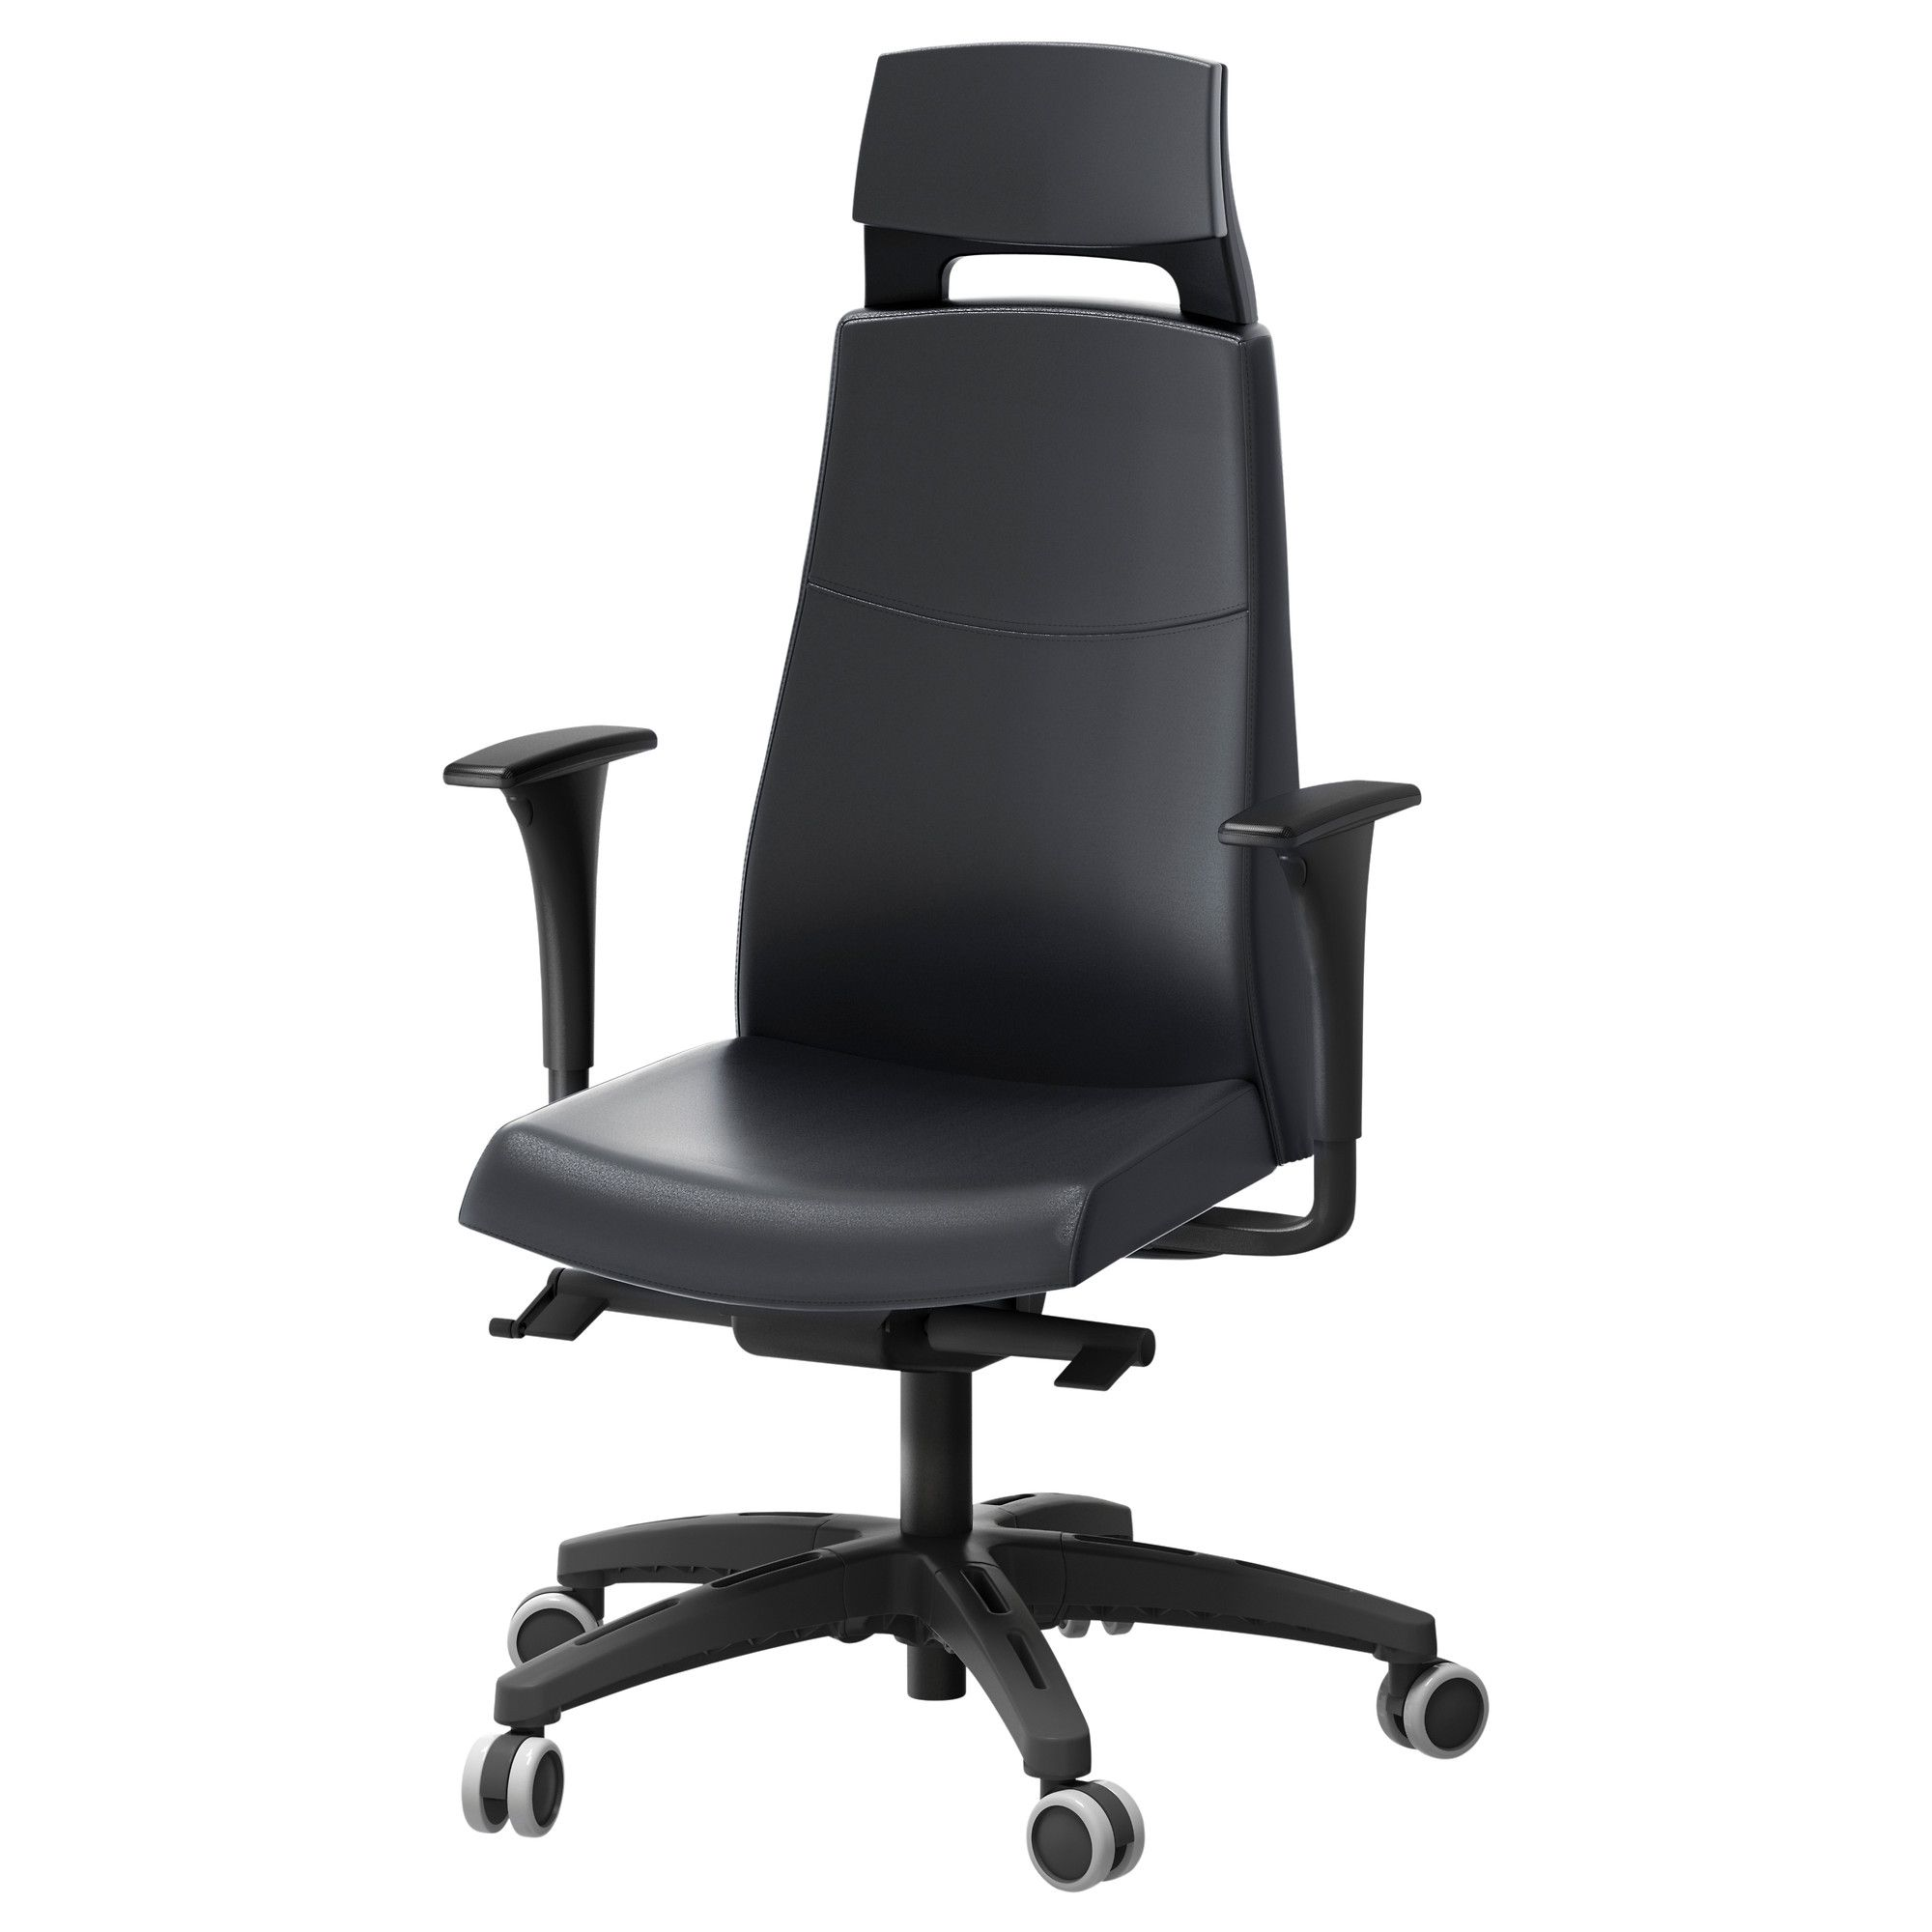 ikea chairs office. VOLMAR Swivel Chair With Headrest/armrests - Black IKEA Ikea Chairs Office